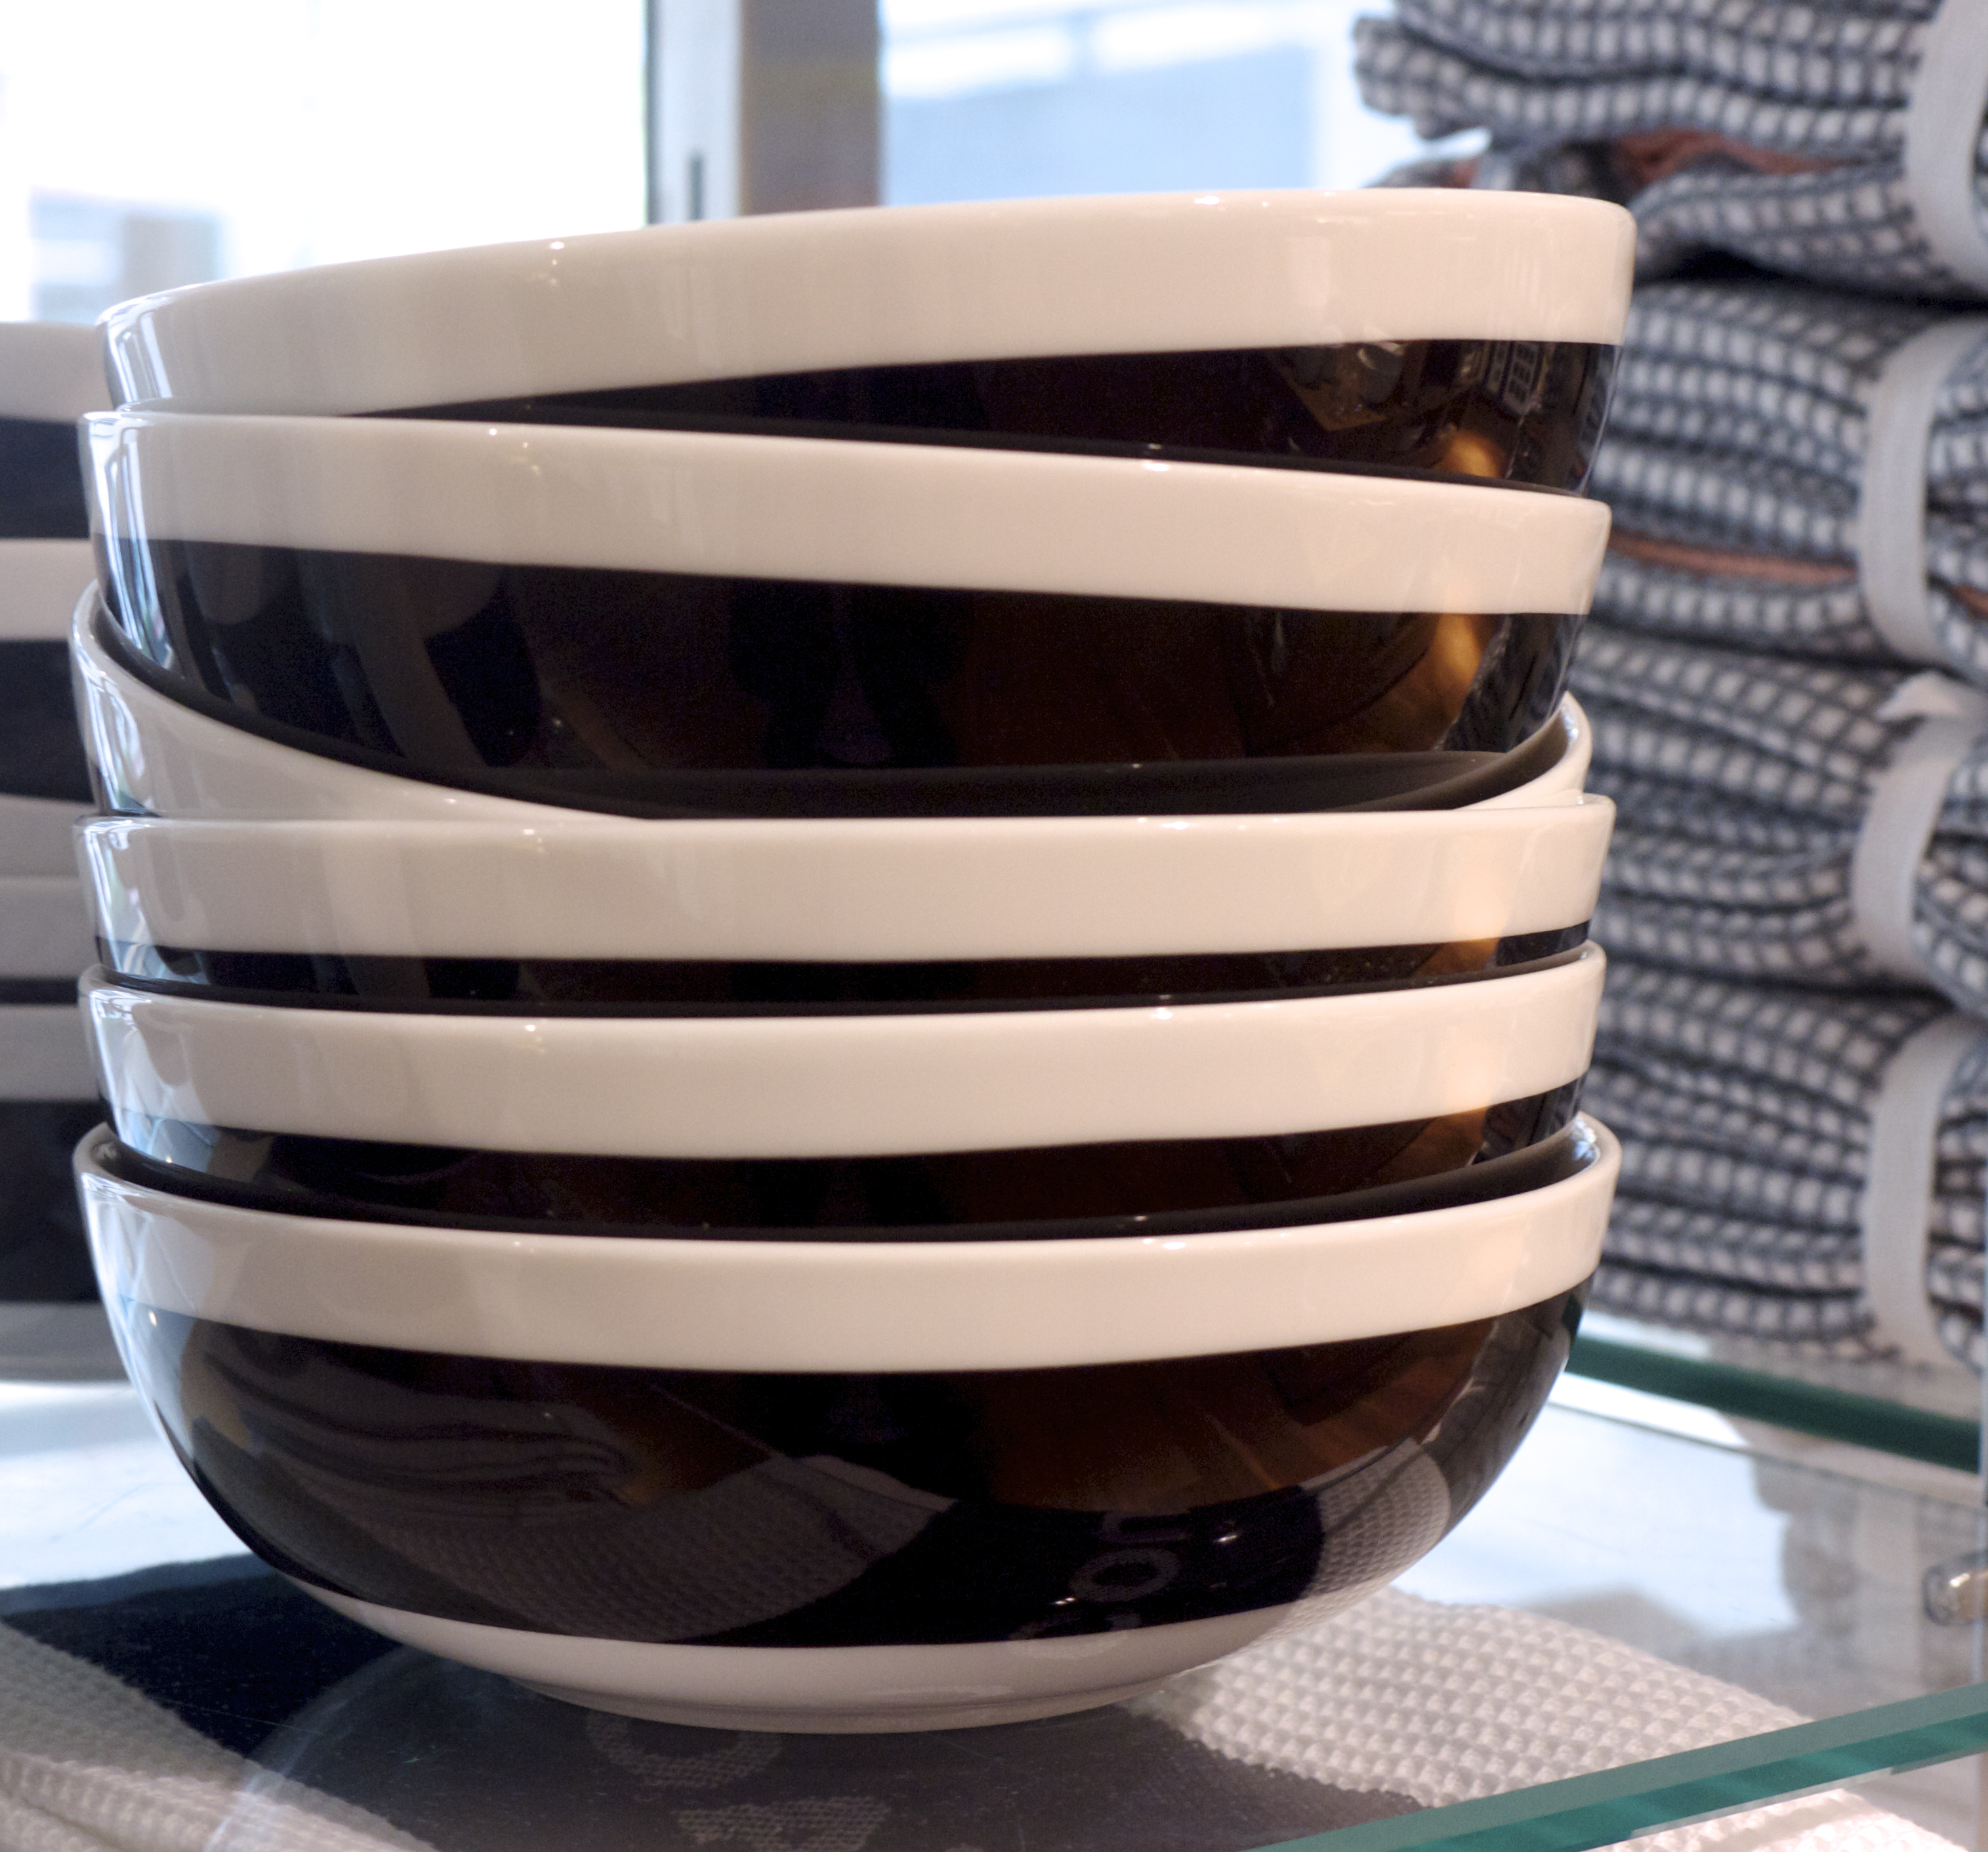 Country Road Black and White Bowls